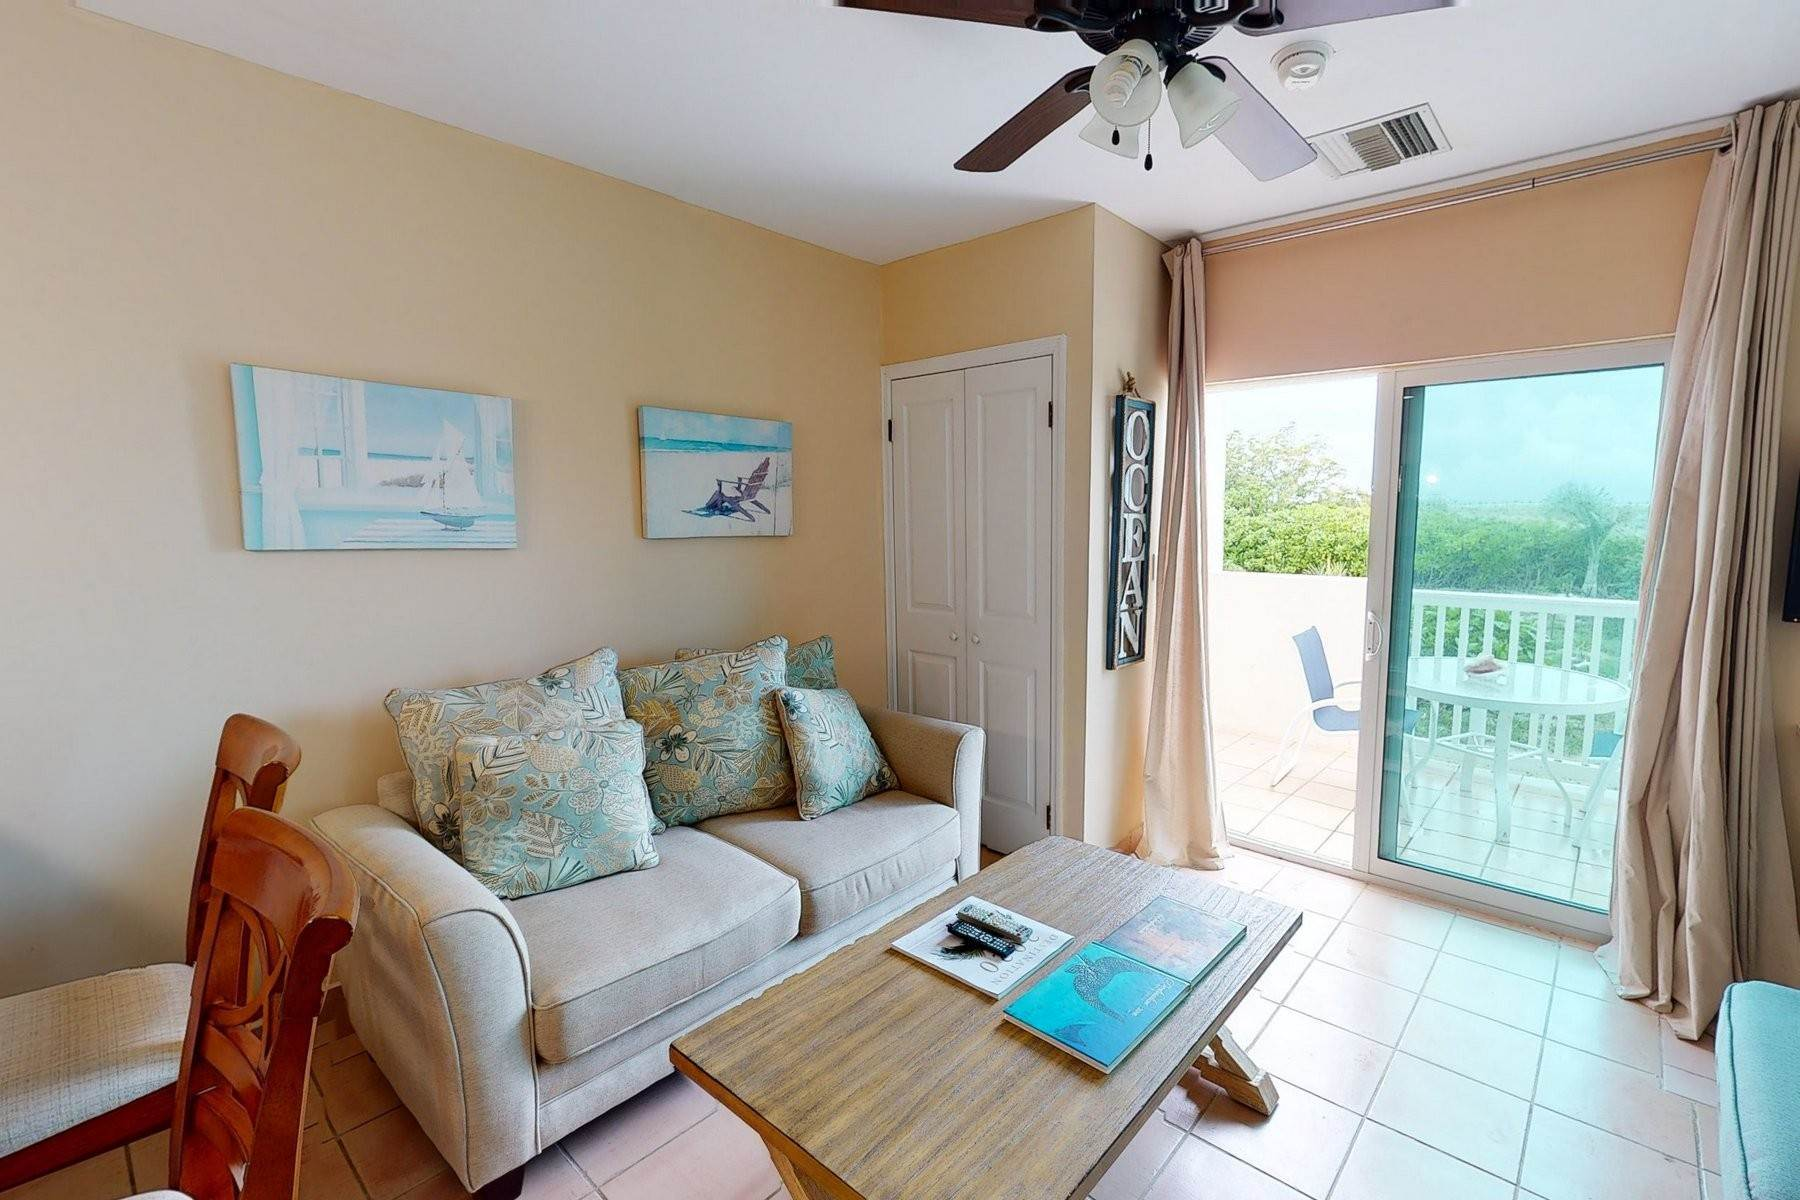 Condominiums for Sale at Northwest Point Resort B1-103 Oceanview North West Point, Providenciales TKCA 1ZZ Turks And Caicos Islands